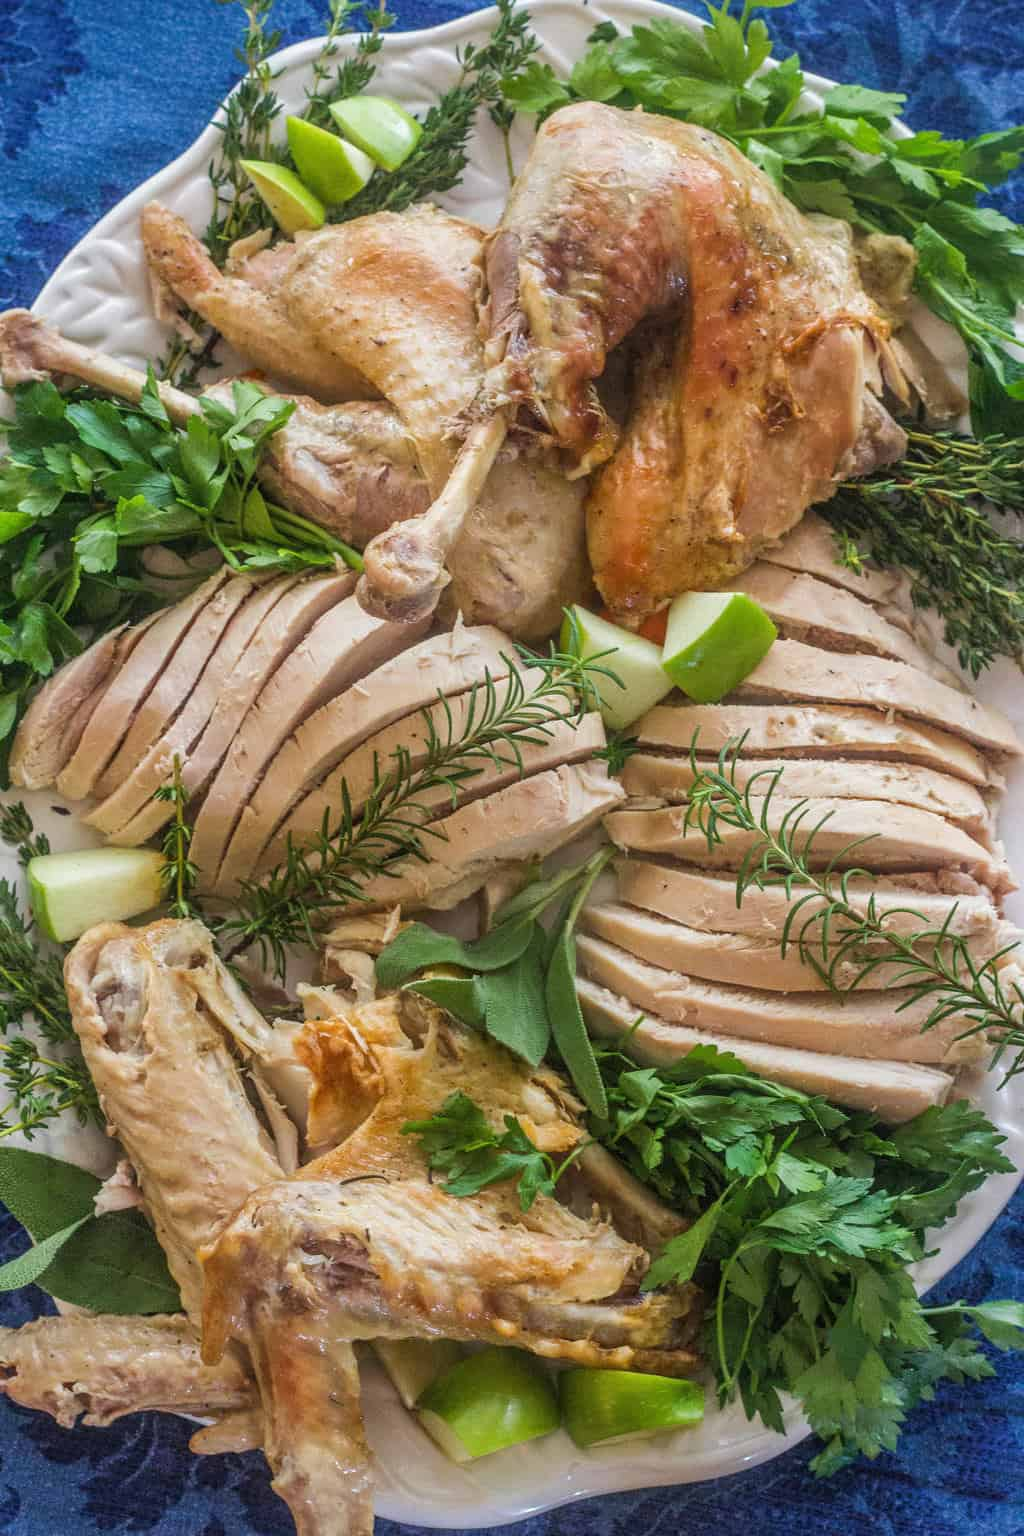 A large platter full of turkey pieces as well as sliced turkey.